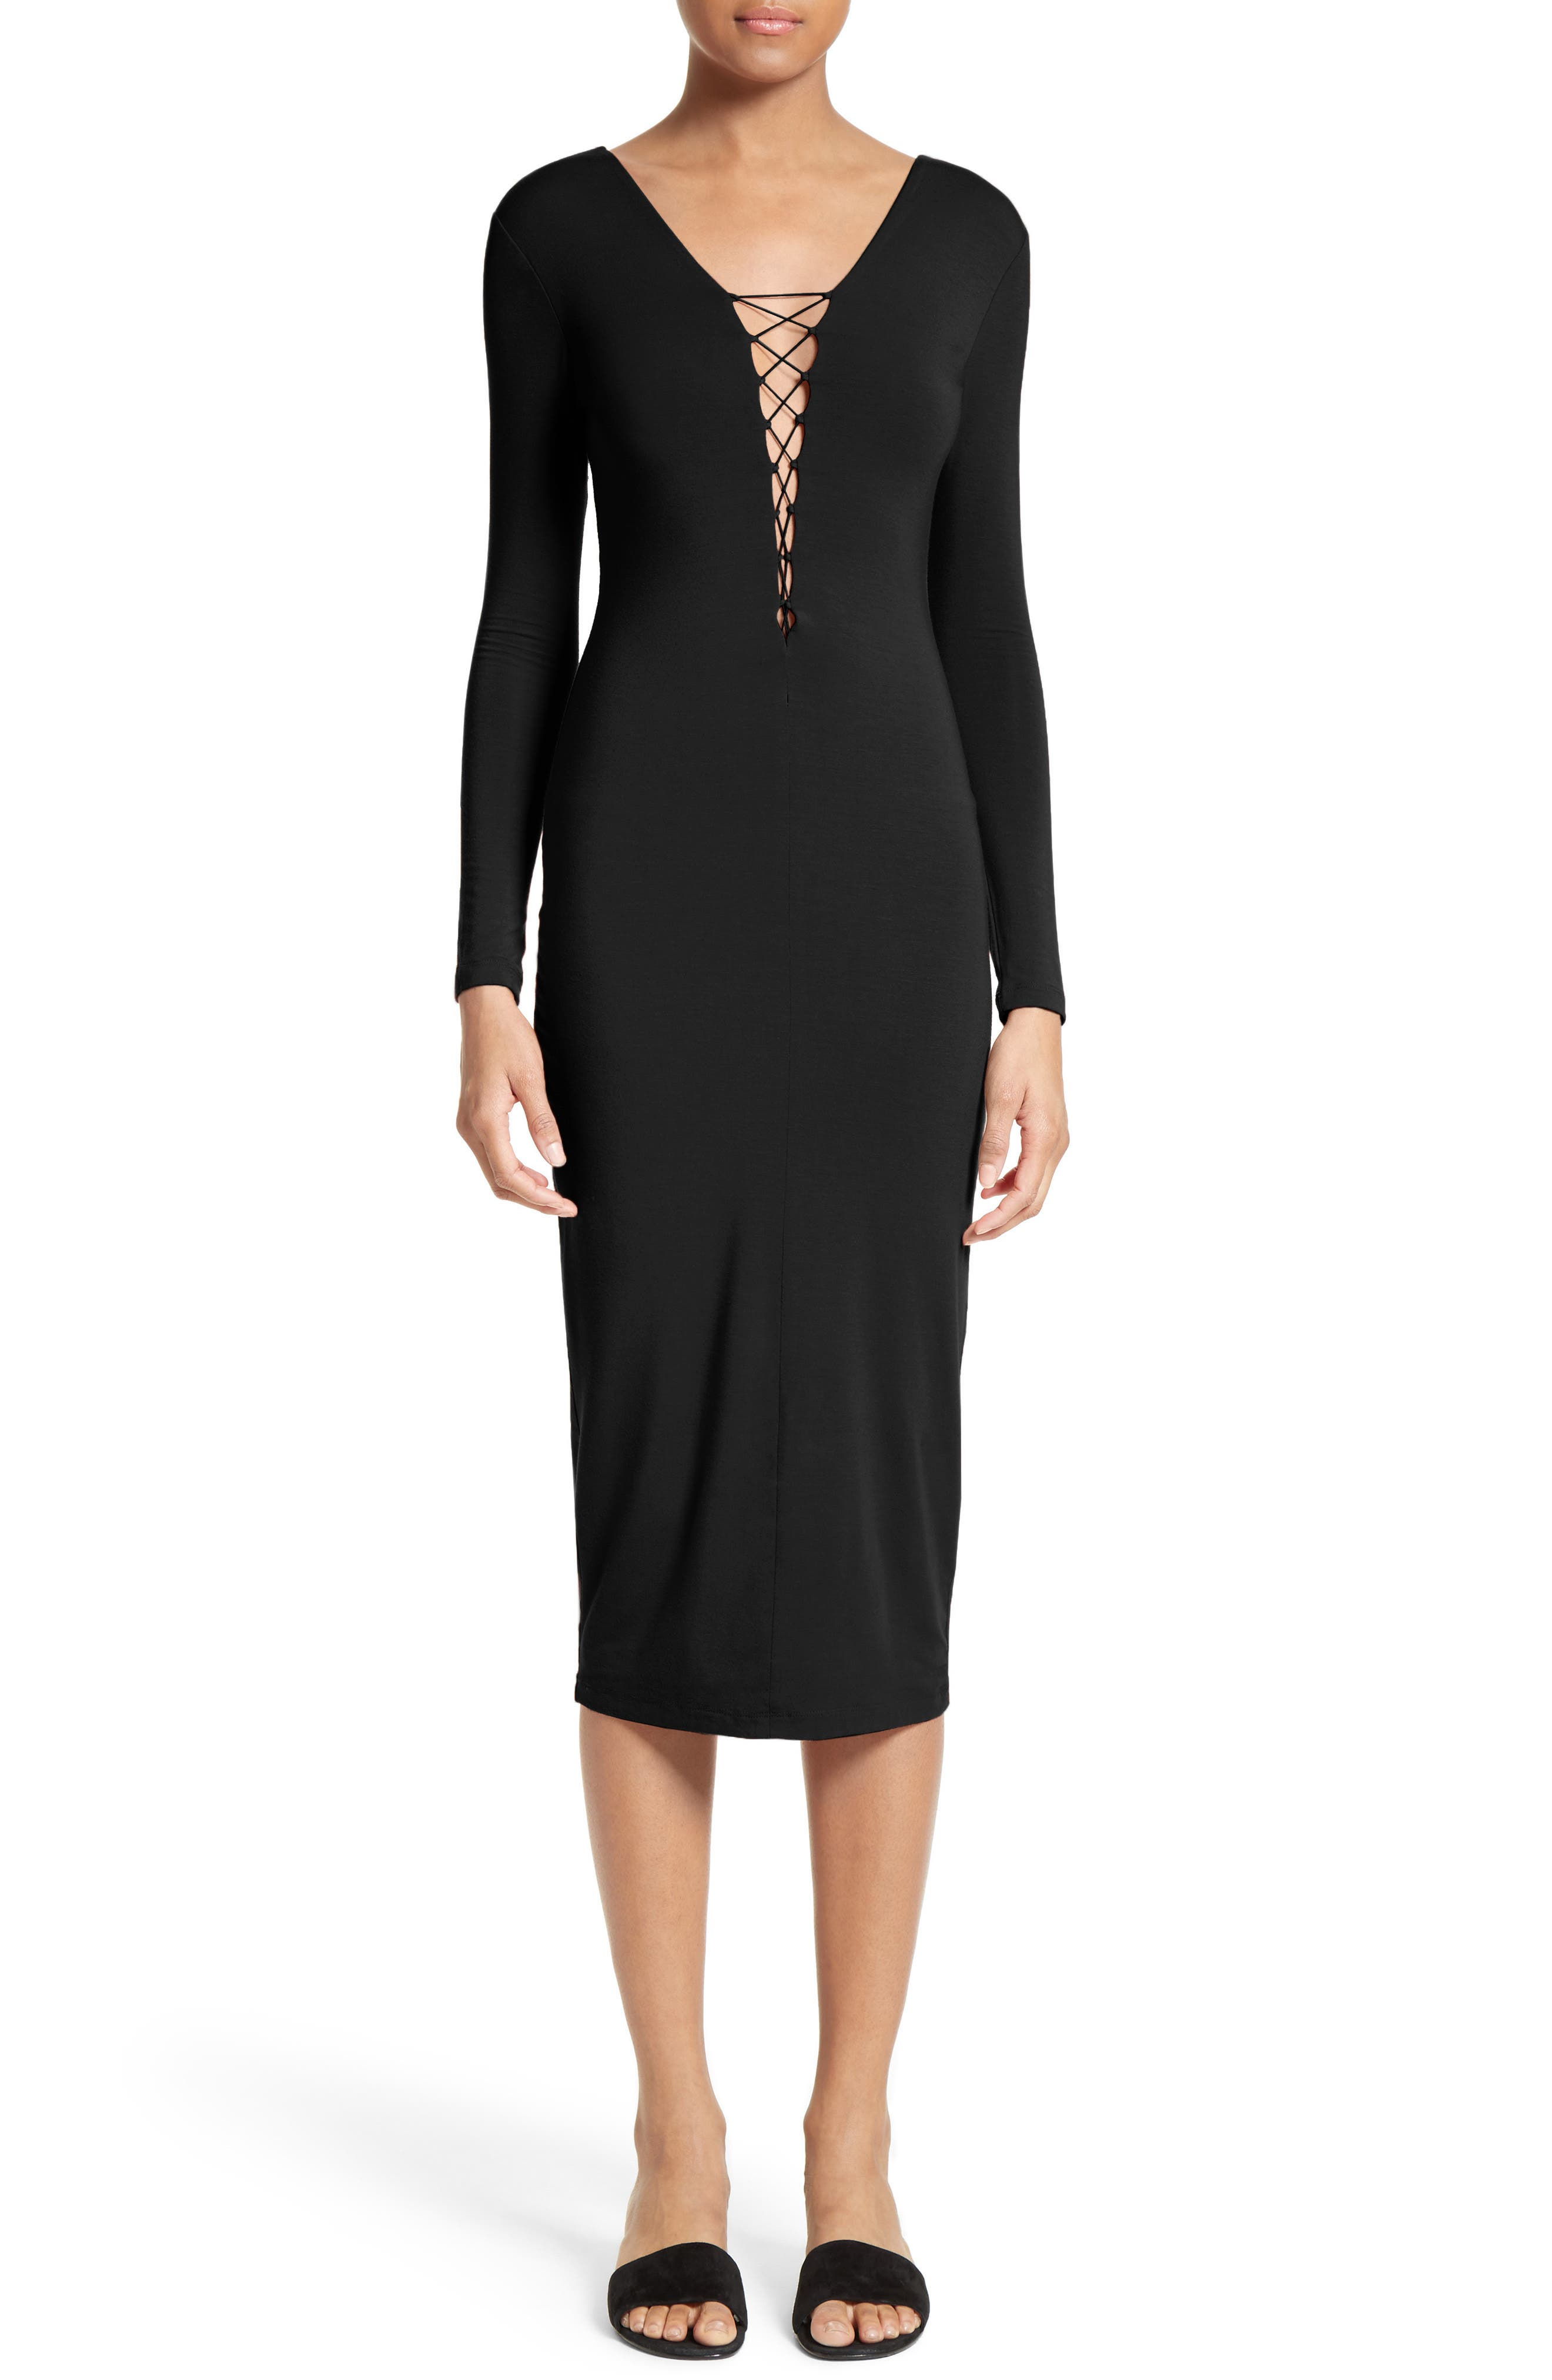 T by Alexander Wang Lace-Up Midi Dress